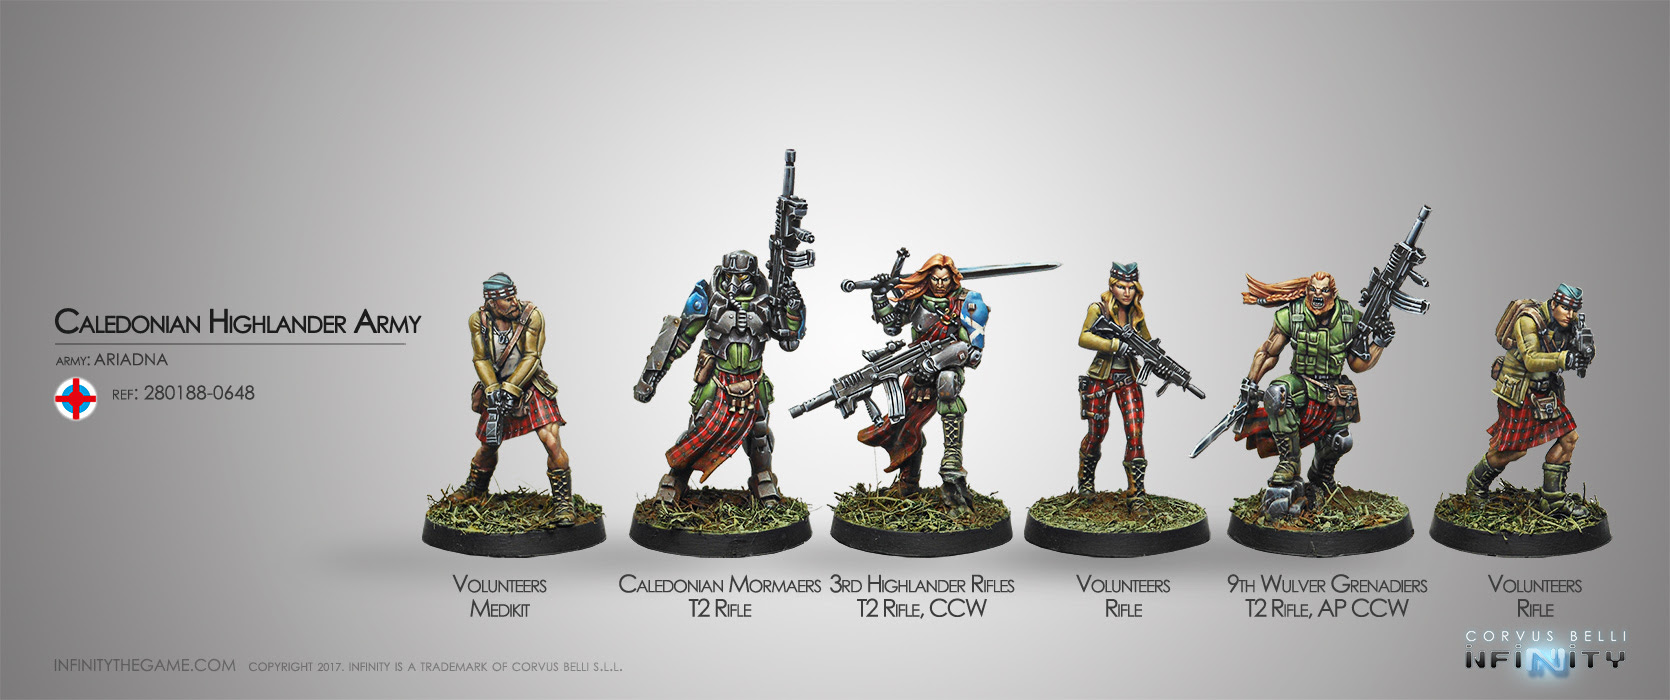 CALEDONIAN HIGHLANDER ARMY, ARIADNA SECTORIAL STARTER PACK